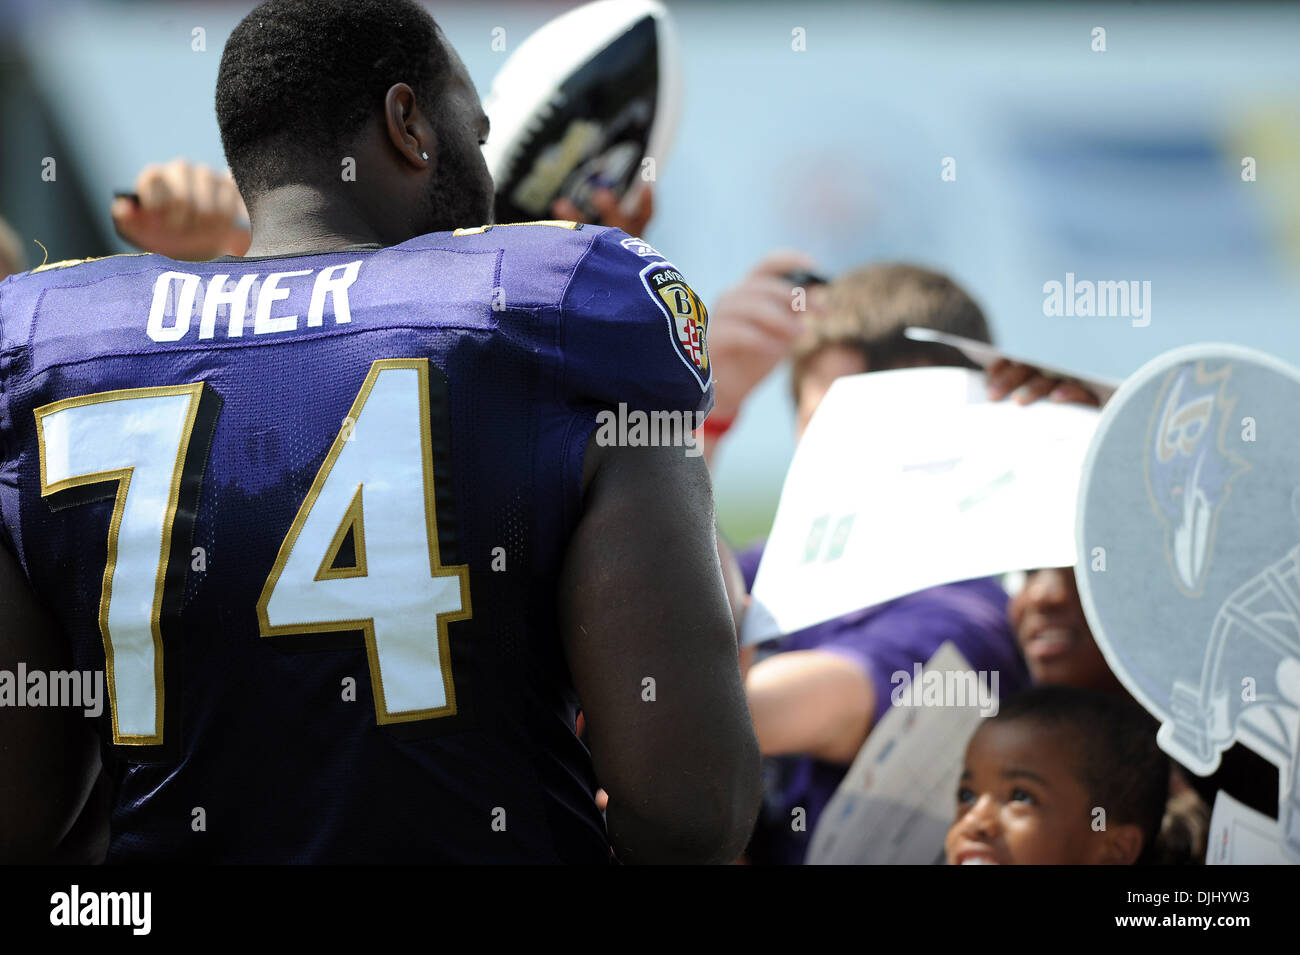 04 August 2010: Baltimore Ravens offensive tackle Michael Oher (74